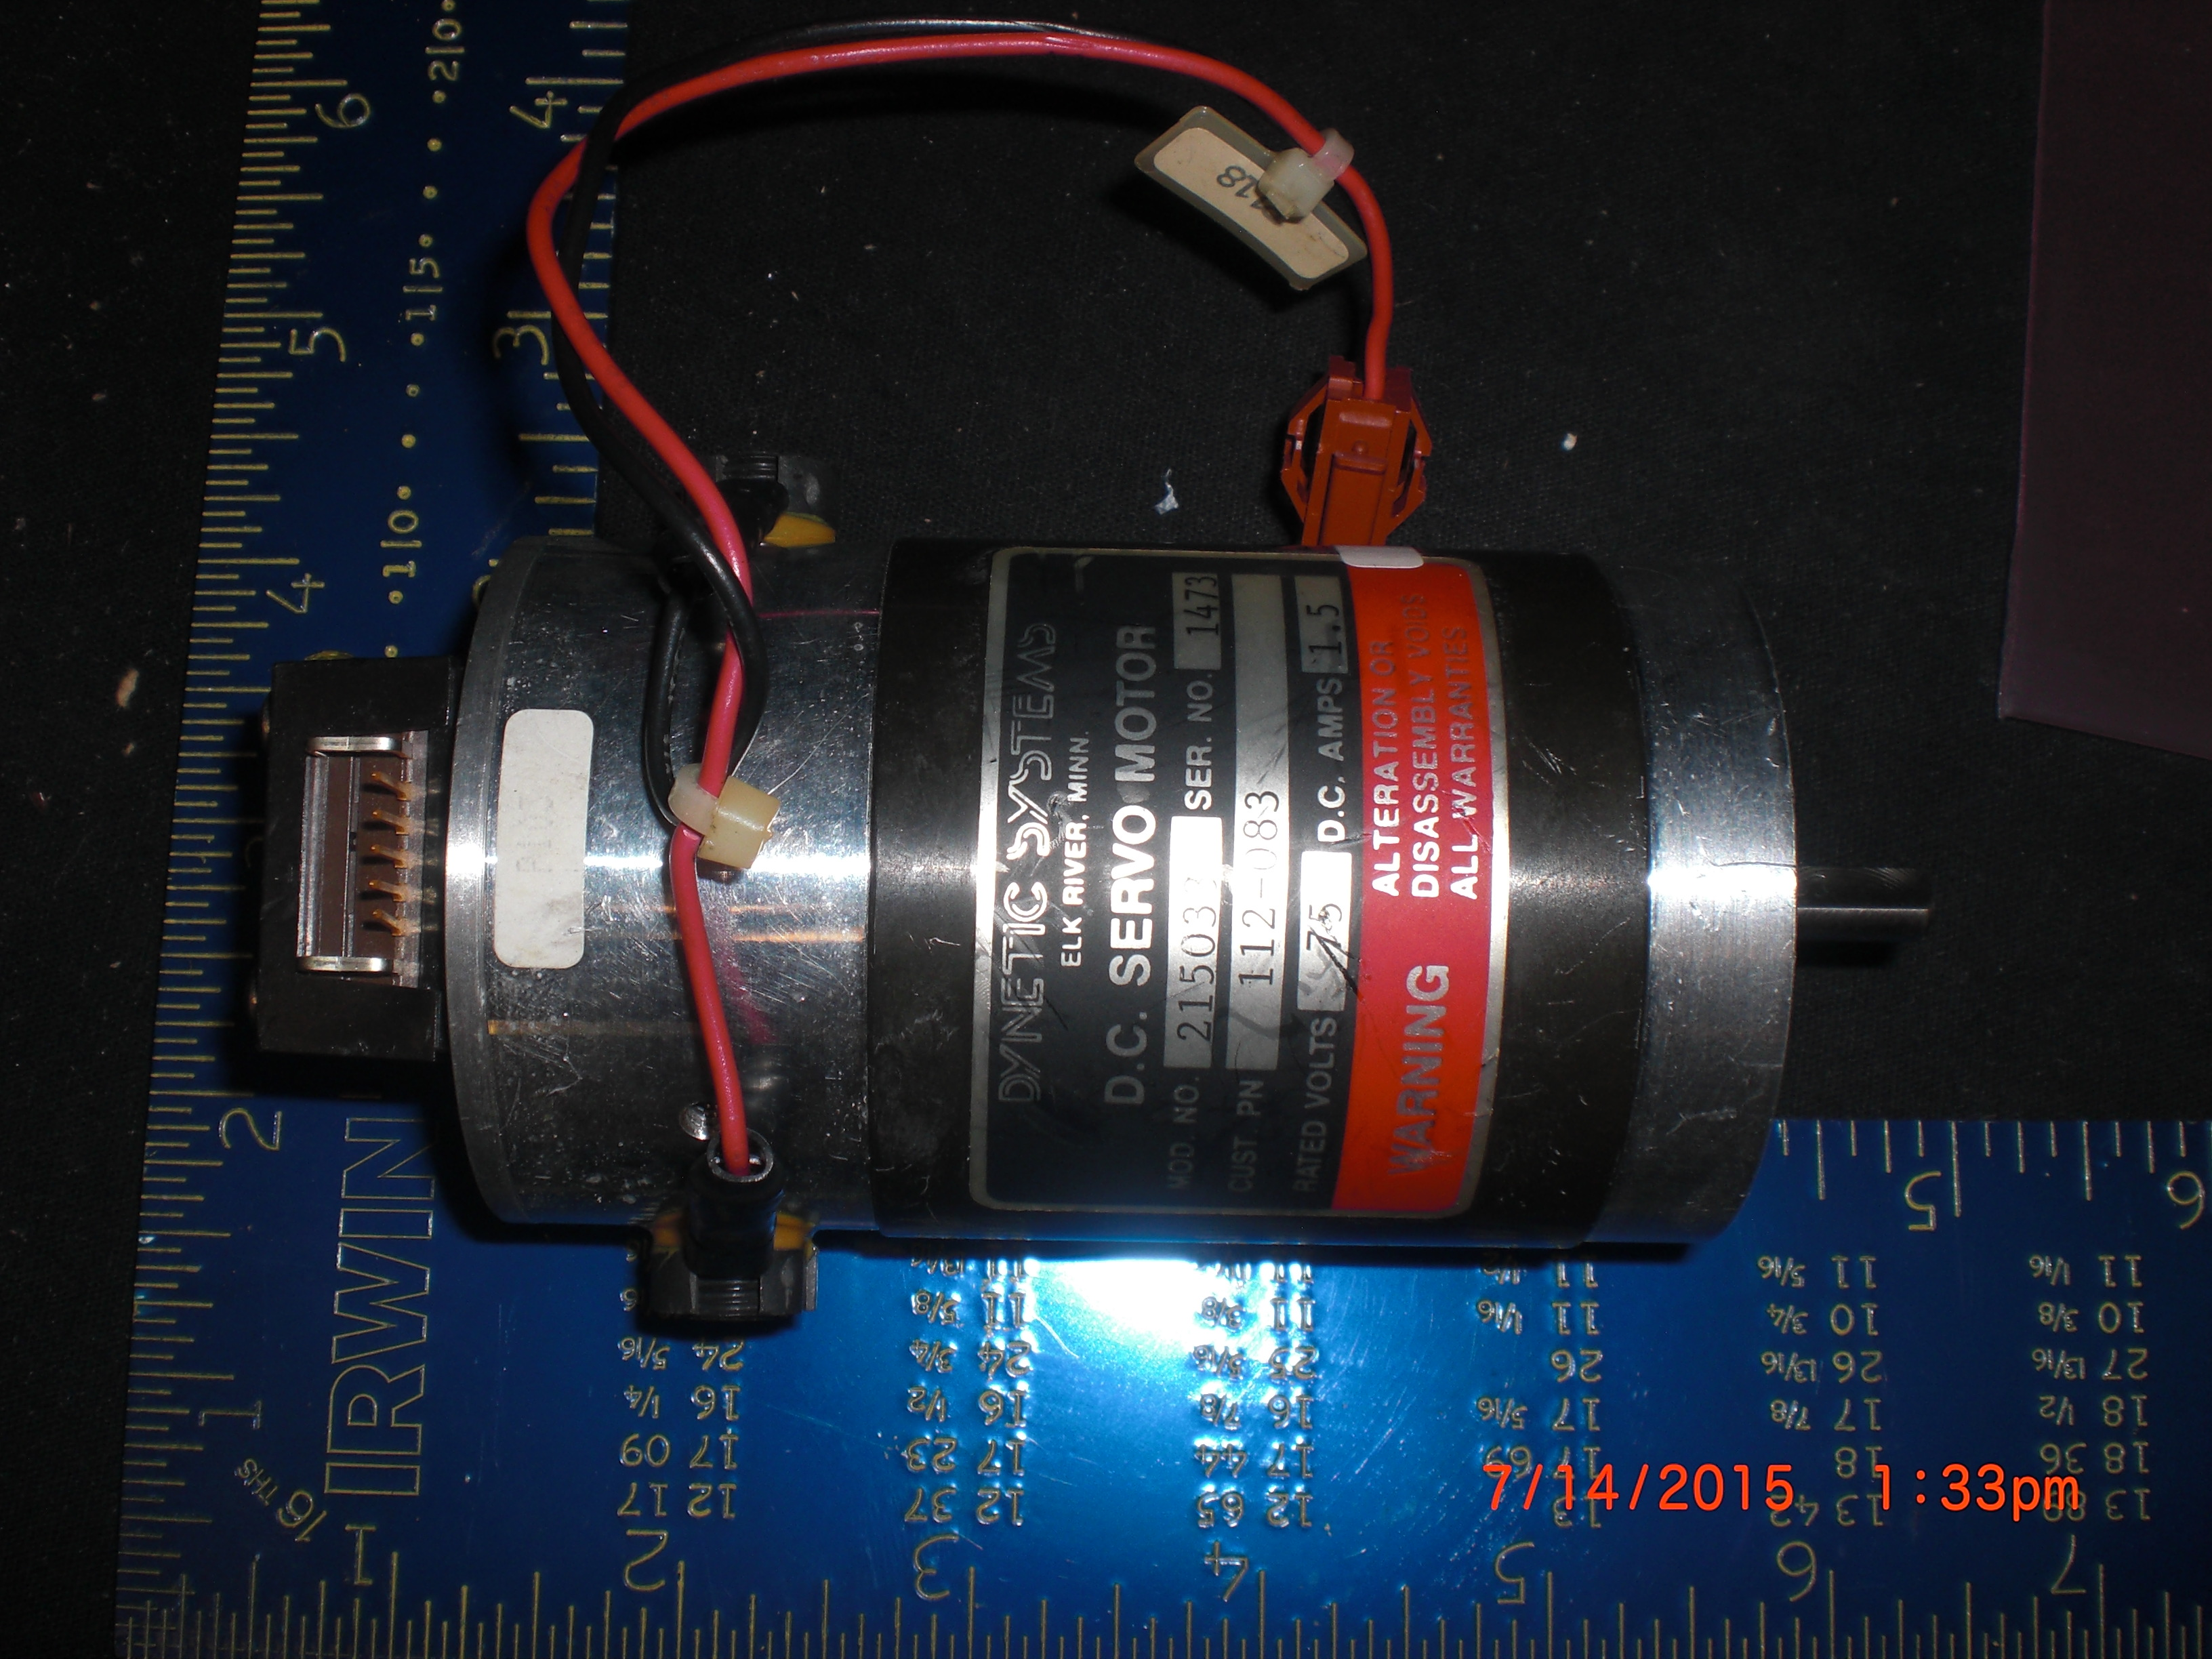 Motor  DC servo 75V 1.5A DYNETIC SYSTEMS 112-083 model 215033 encoder E2-512-250